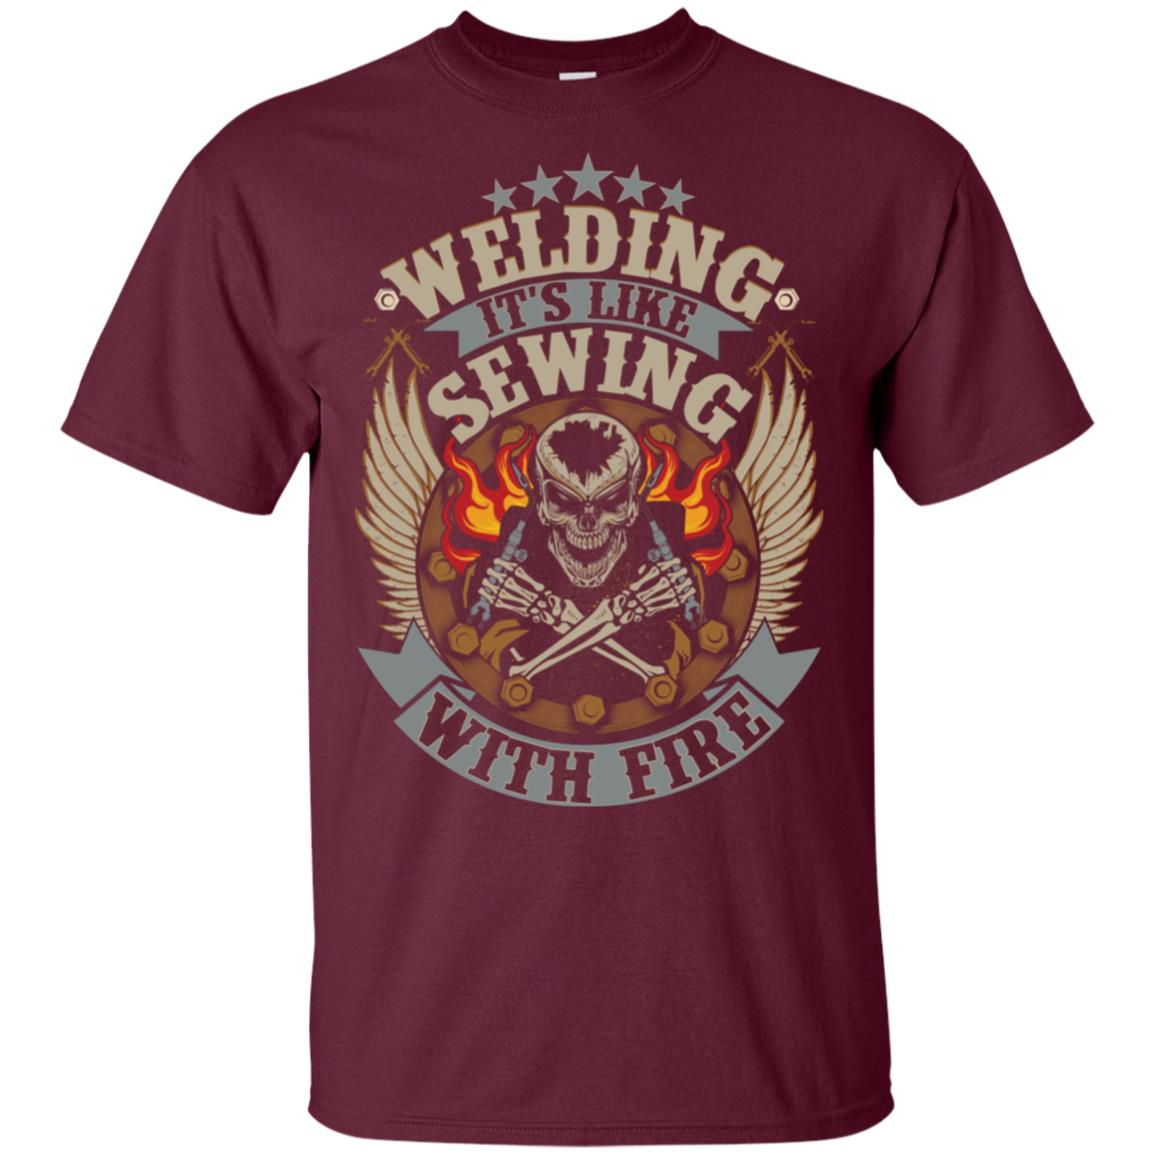 Welder Welding Sewing With Fire Image On Back Unisex Short Sleeve